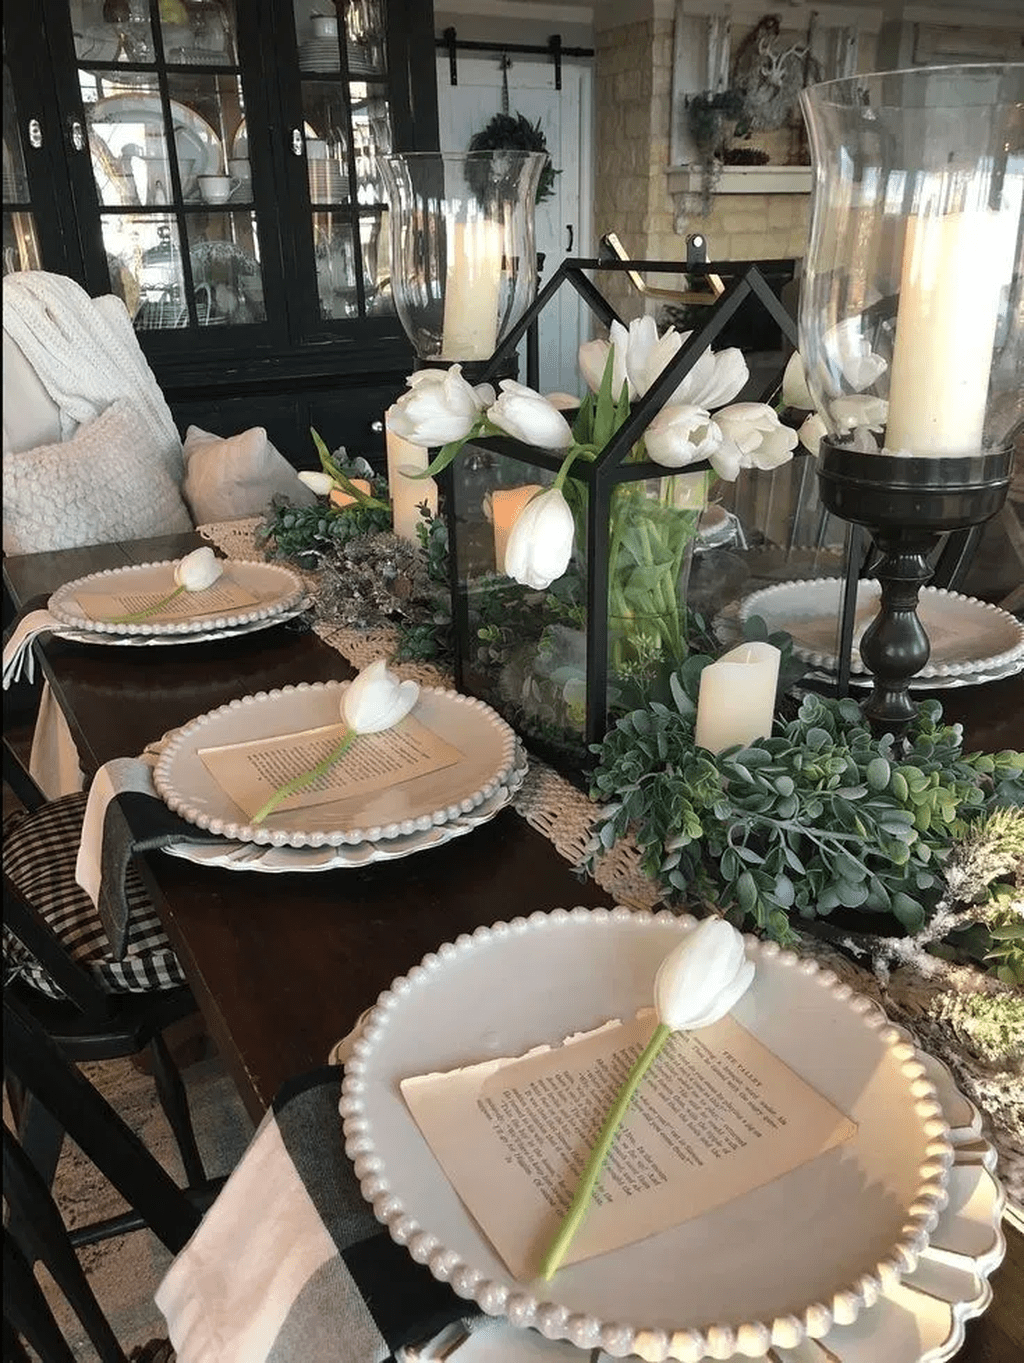 32 Popular Winter Dining Room Decor Ideas Match All House Styles Decor Dining Hou In 2020 Christmas Dining Room Table Dining Room Cozy Dining Room Table Centerpieces